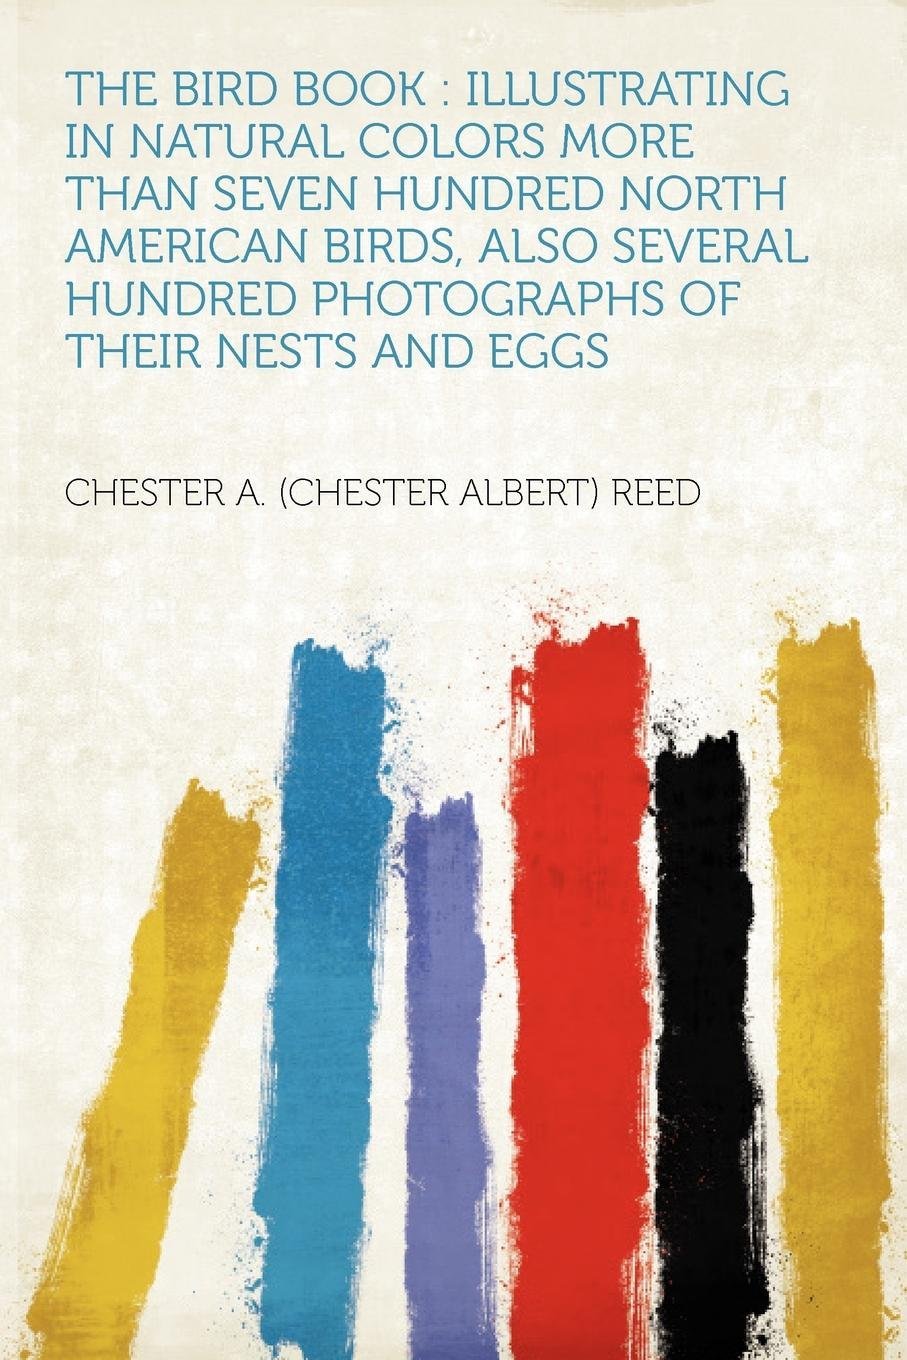 The Bird Book: Illustrating in Natural Colors More Than Seven Hundred North American Birds, Also Several Hundred Photographs of Their Nests and Eggs pdf epub